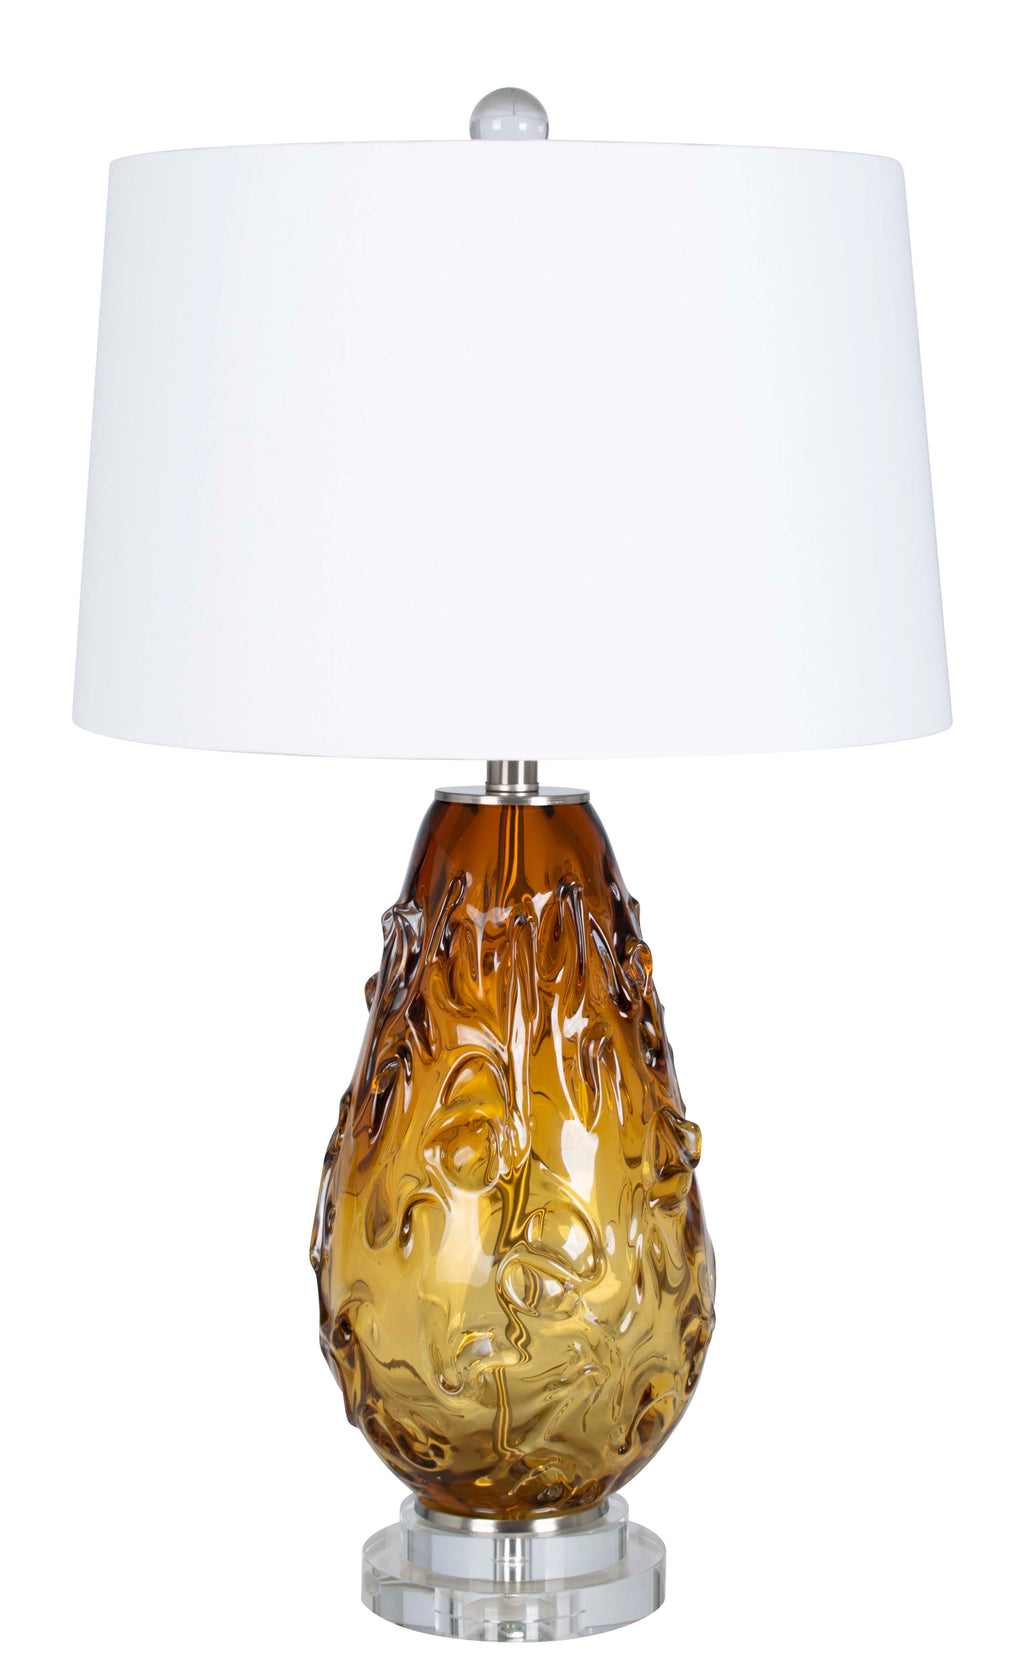 Aurelia Table Lamp - NEW - Couture Lamps